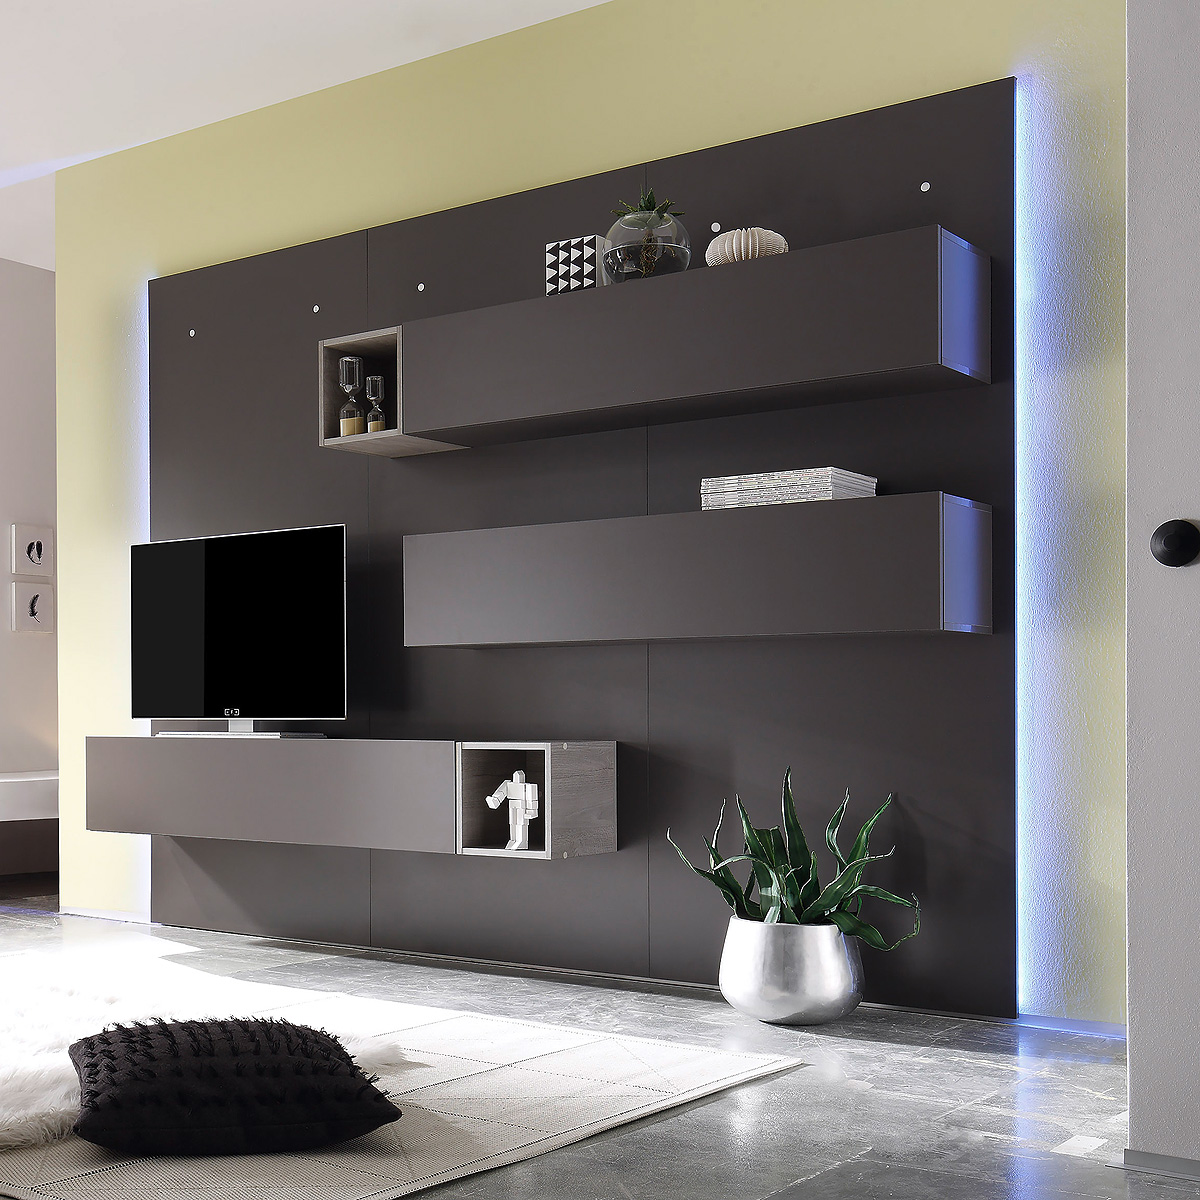 wohnwand cube 2 kombi 2 anbauwand wohnkombi in dunkel grau. Black Bedroom Furniture Sets. Home Design Ideas